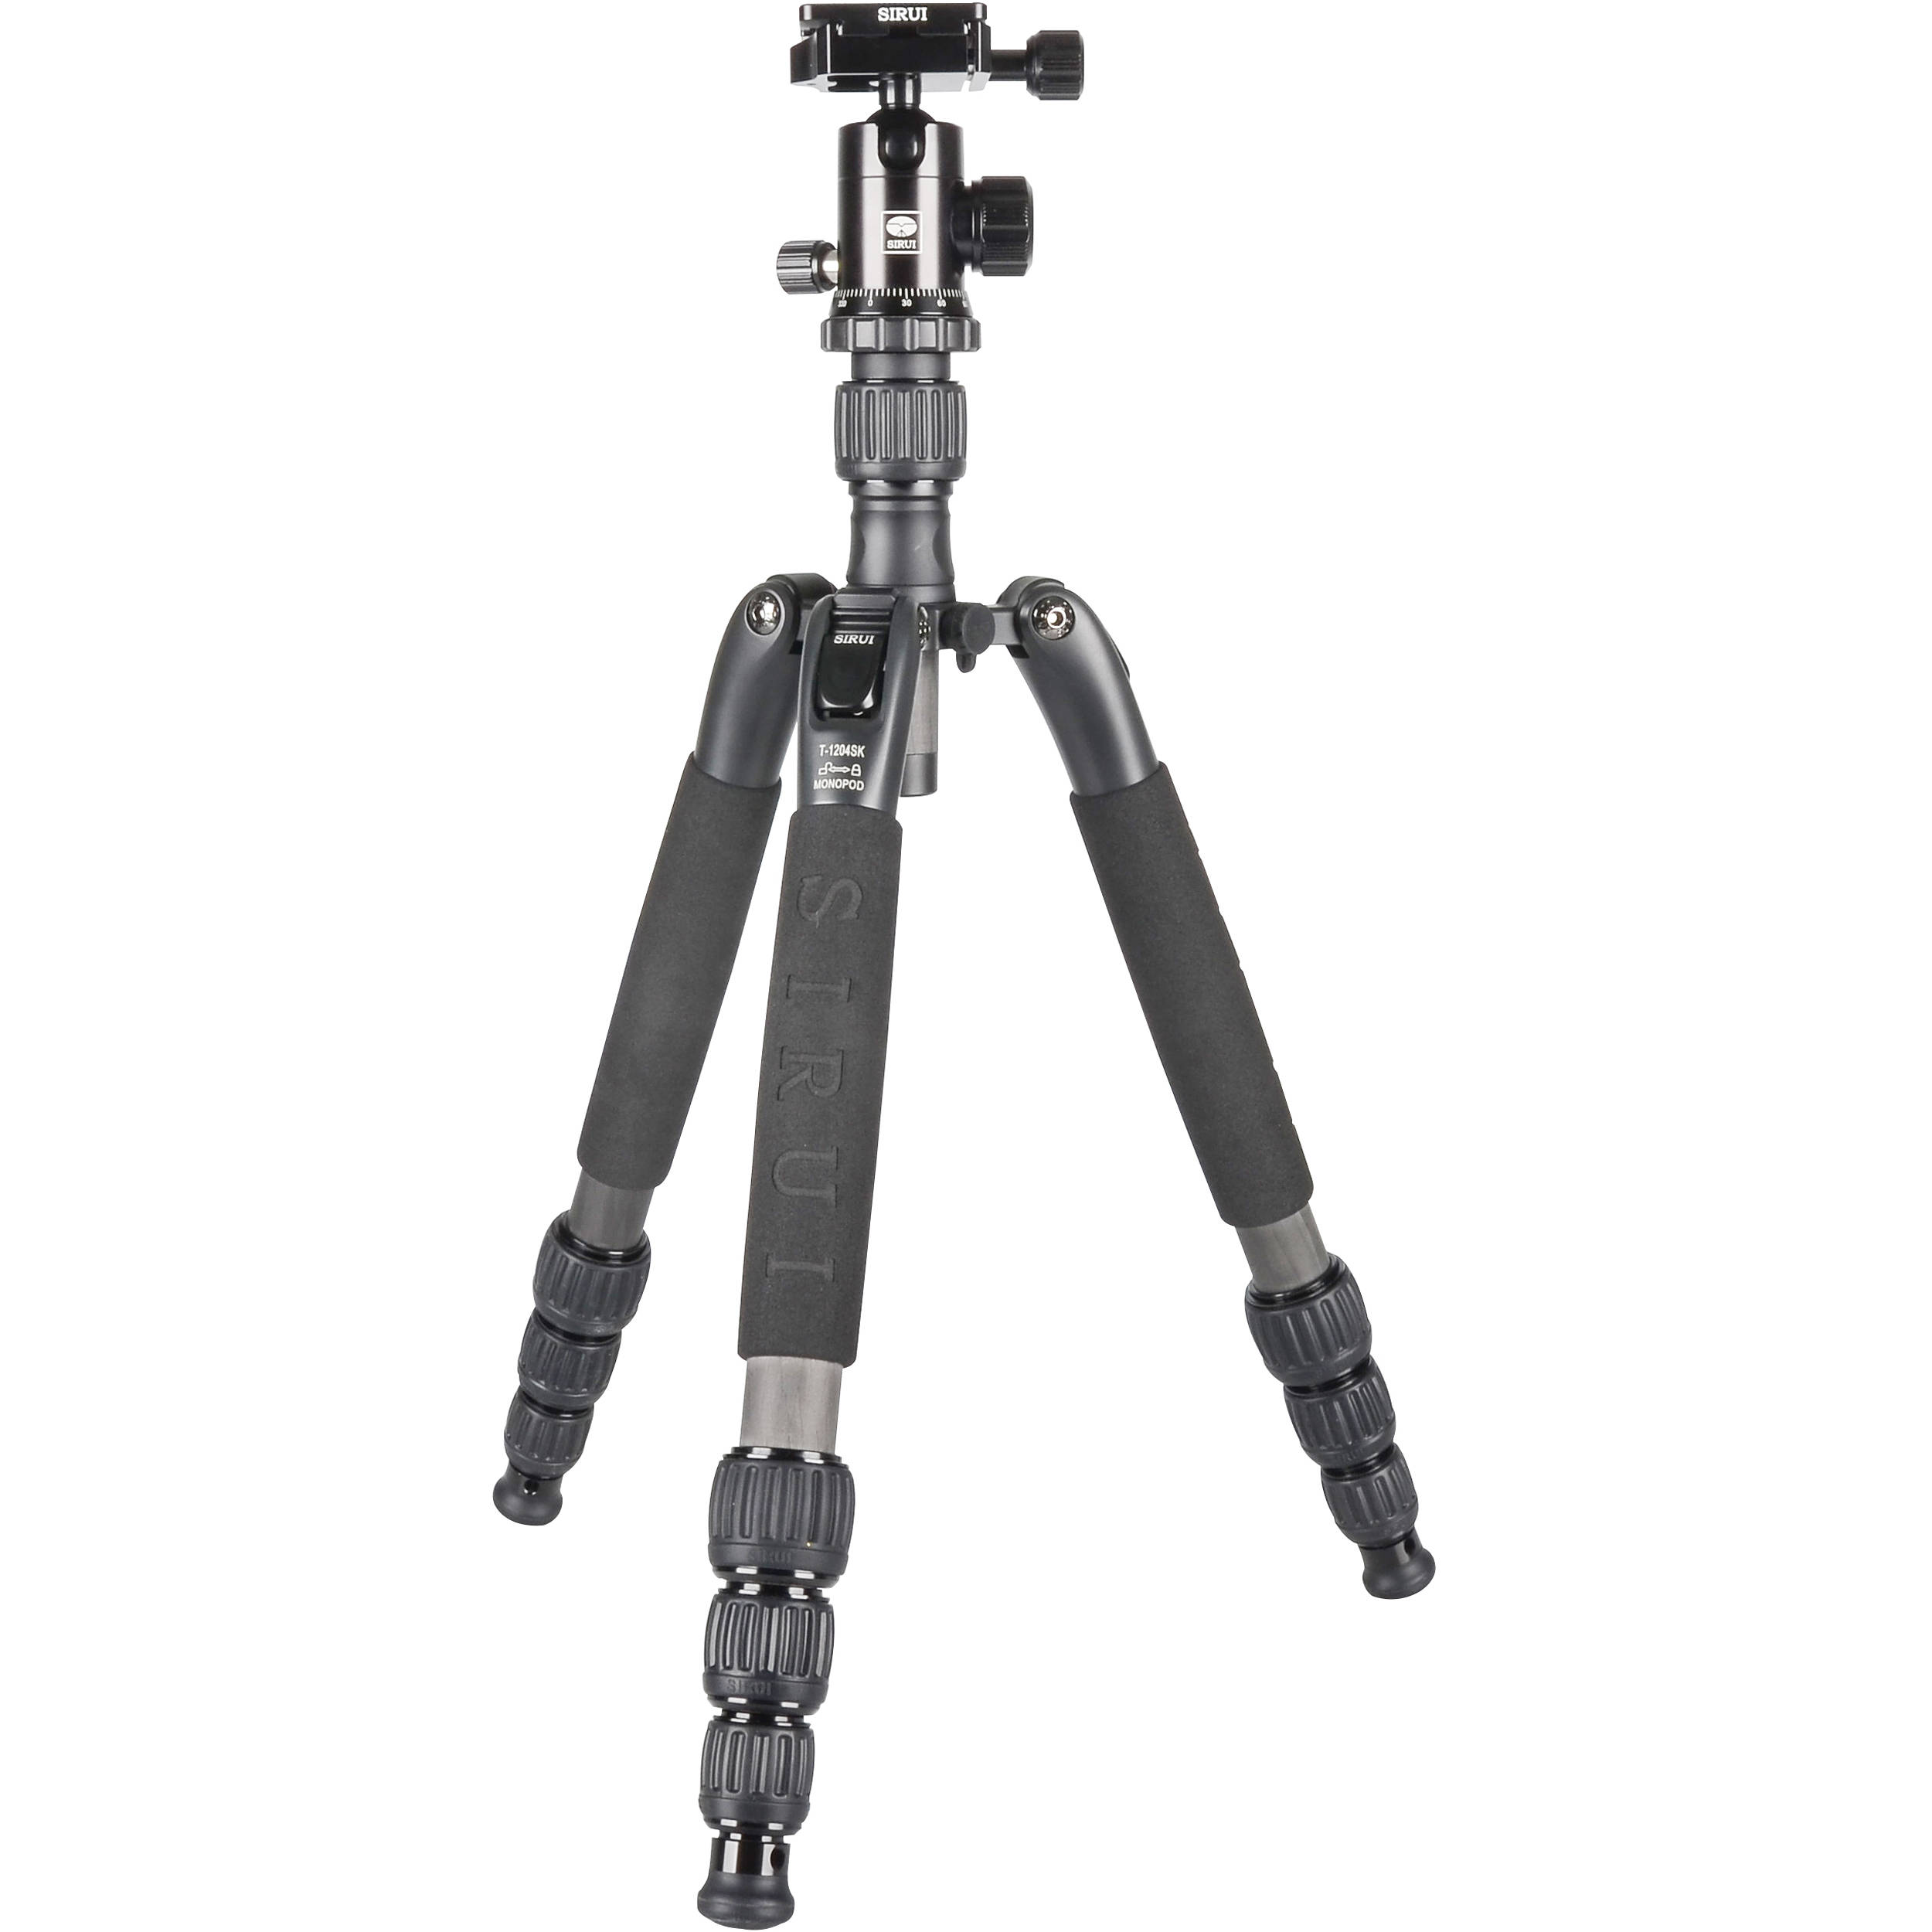 Hot Deal: Sirui T-1204SK Carbon Fiber Tripod with G-10KX Ball Head Travel Tripod Kit for $149.90